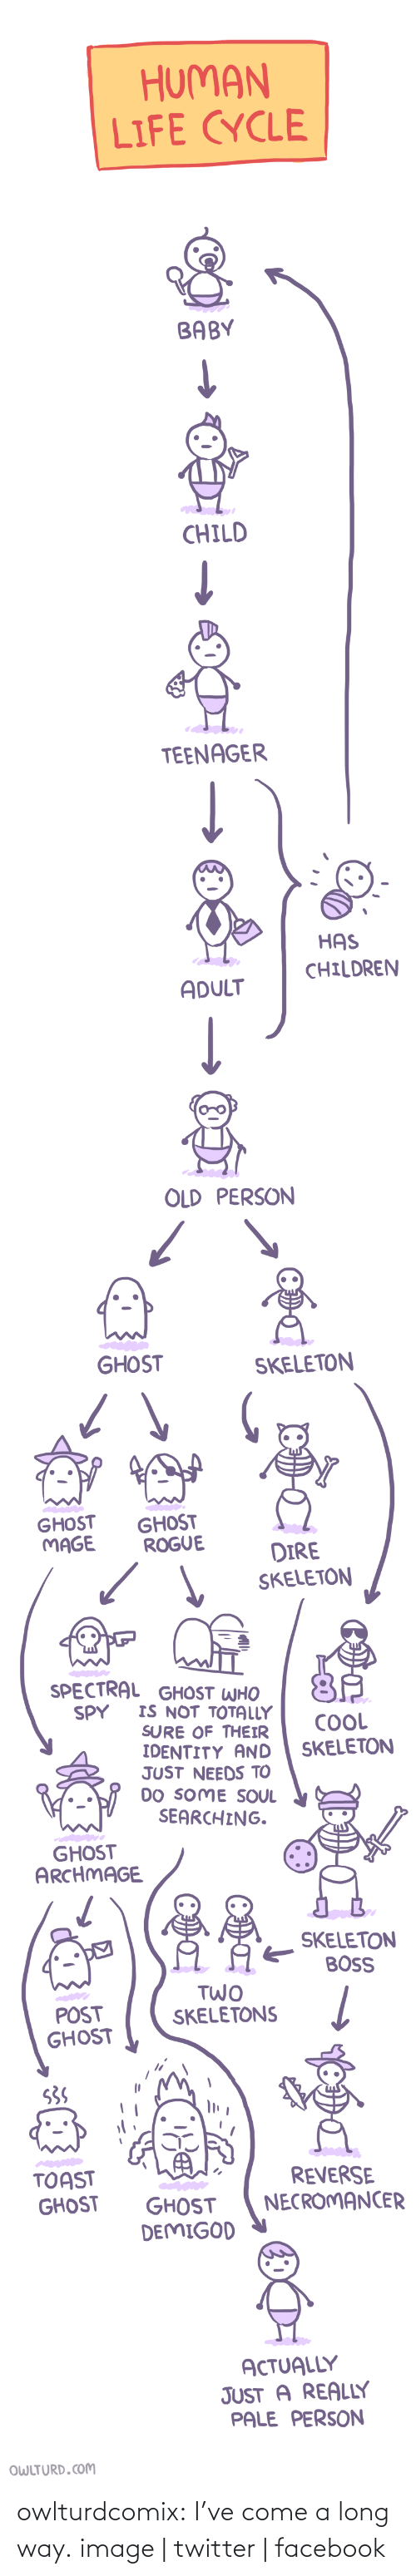 Soul Searching: HUMAN  LIFE CYCLE  BABY  CHILD   TEENAGER  HAS  CHILDREN  ADULT  OLD PERSON   GHOST  SKELETON  GHOST  MAGE  GHOST  ROGUE  DIRE  SKELETON   SPECTRAL GHOST WHO  IS NOT TOTALLY  SURE OF THEIR  IDENTITY AND  JUST NEEDS TO  DO SOME SOUL  SEARCHING.  SPY  COOL  SKELETON  GHOST  ARCHMAGE  SKELETON  BOSS  TWO   POST  GHOST  SKELETONS  S3S  TOAST  GHOST  REVERSE  NECROMANCER  GHOST  DEMIGOD  ACTUALLY  JUST A REALLY  PALE PERSON  OWLTURD.COM owlturdcomix:  I've come a long way. image | twitter | facebook